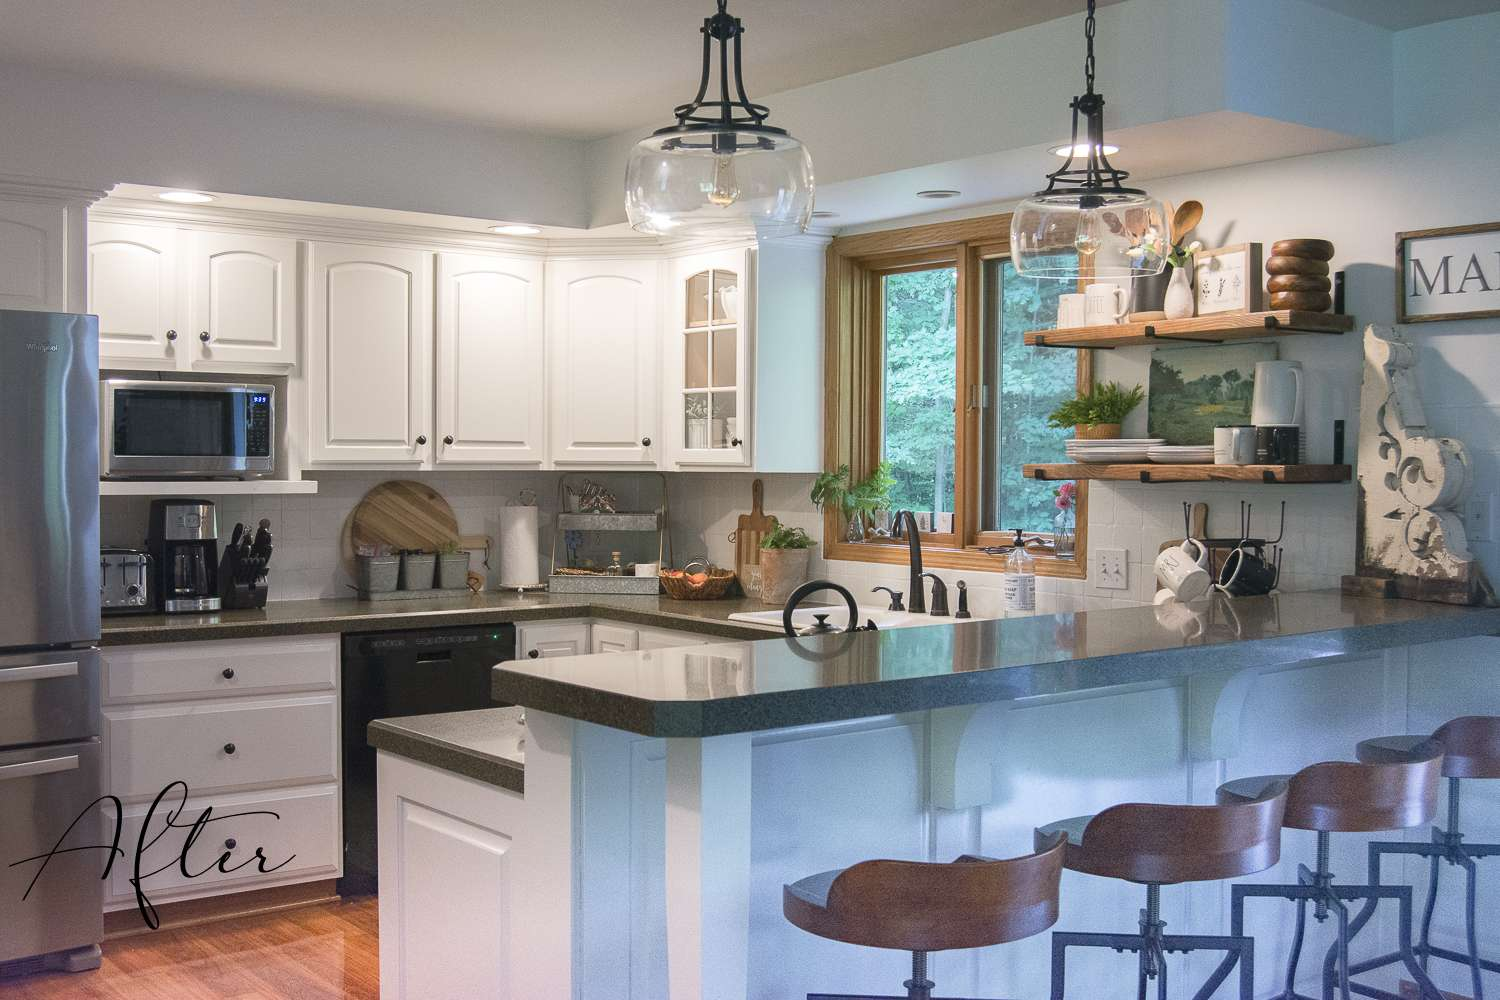 Have you ever been frustrated by odd coloring in your home? Lighting is most likely the culprit! Learn about the importance of lighting in interior design.